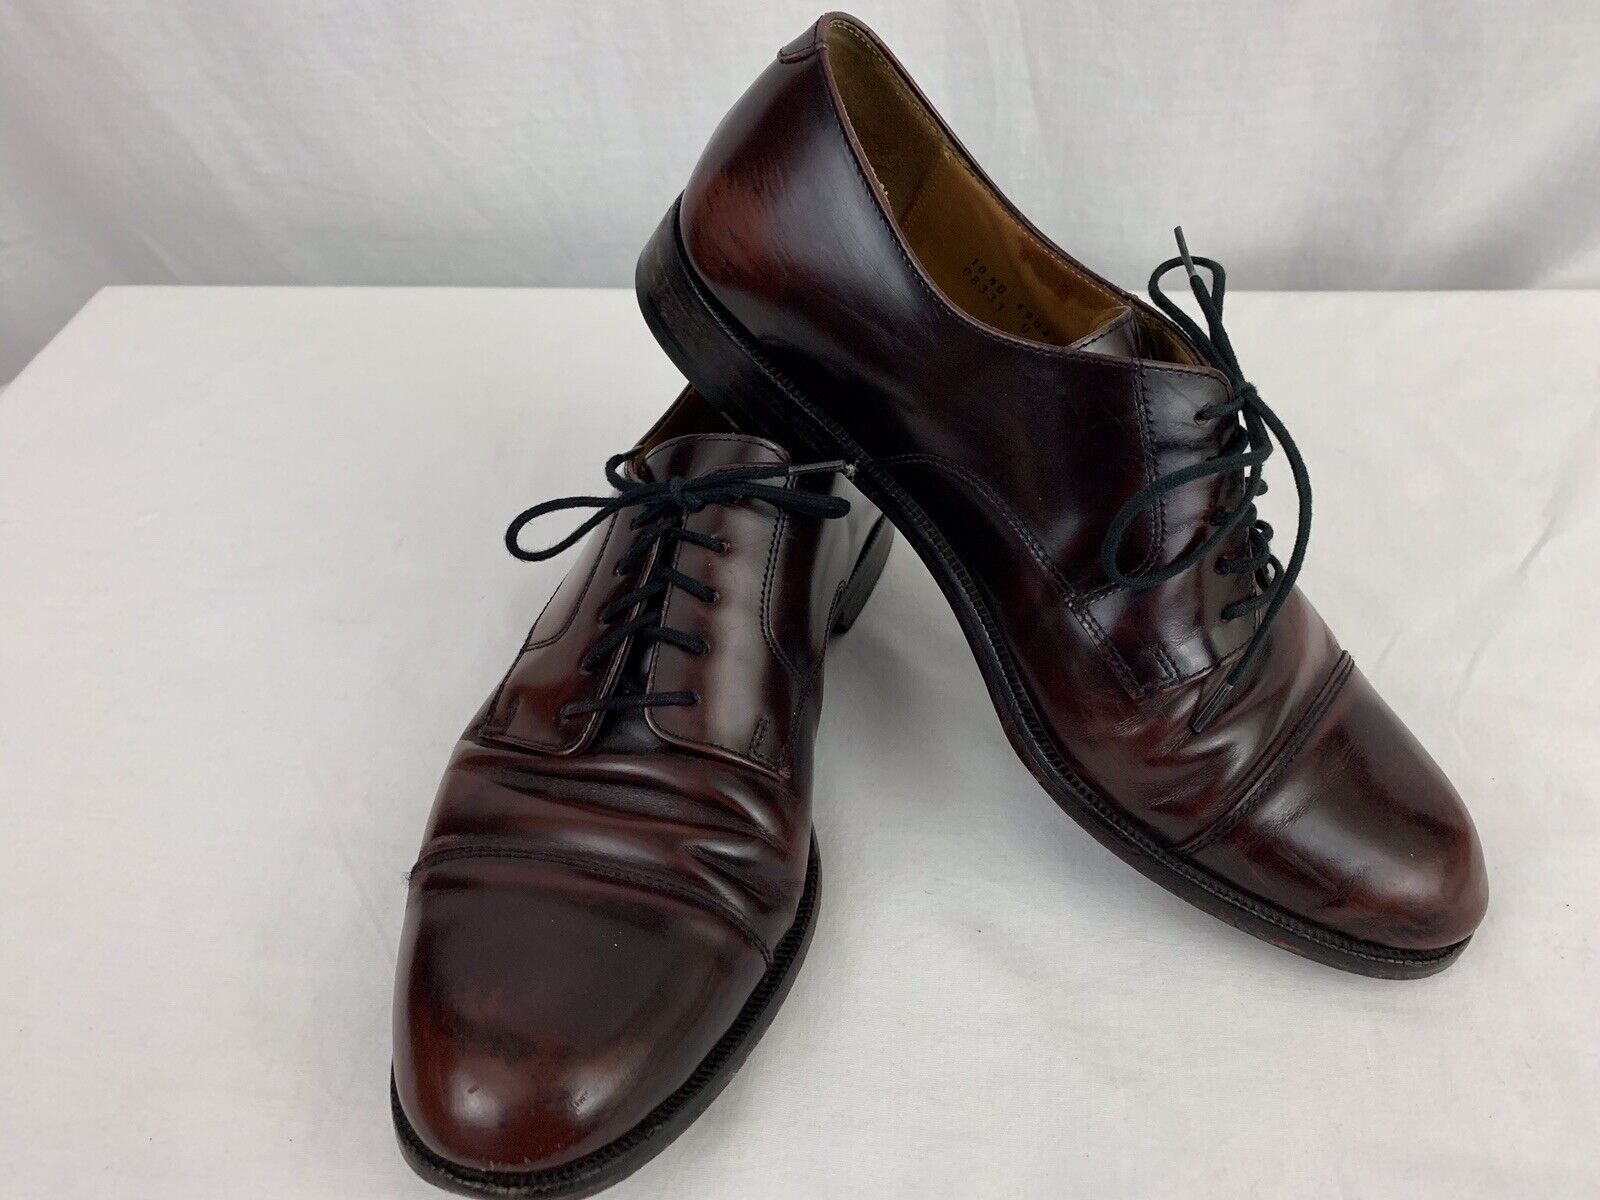 Cole Haan Caldwell Dress Oxfords Mens Size 10.5 D Burgundy Leather Cap Toe 08331